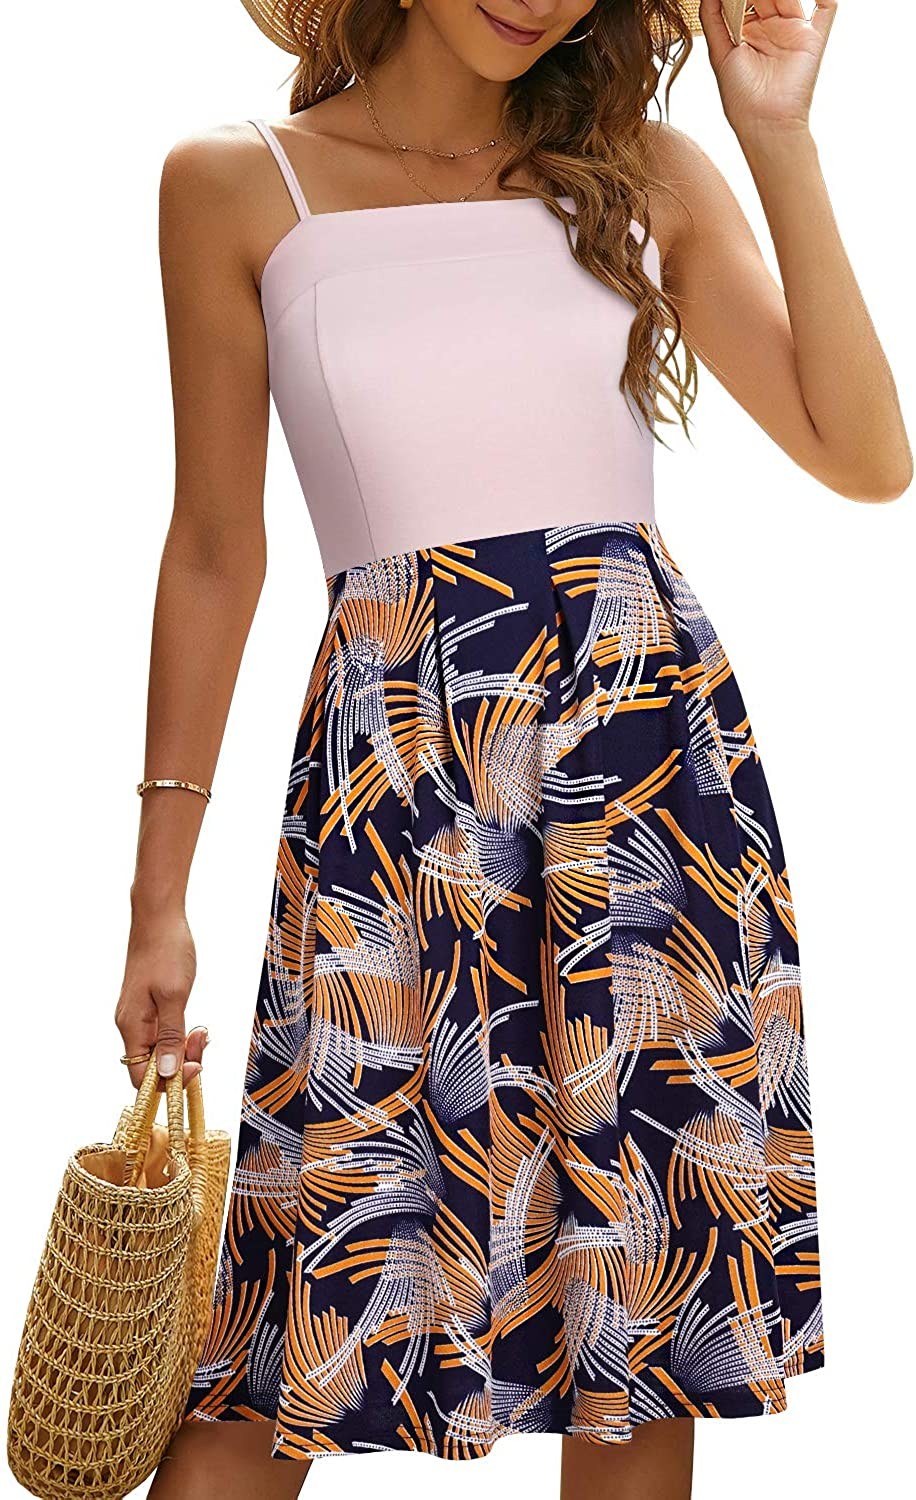 YATHON Summer Dresses for Women Casual Party Swing Dress Spaghetti Strap Sundress for Women with Pockets